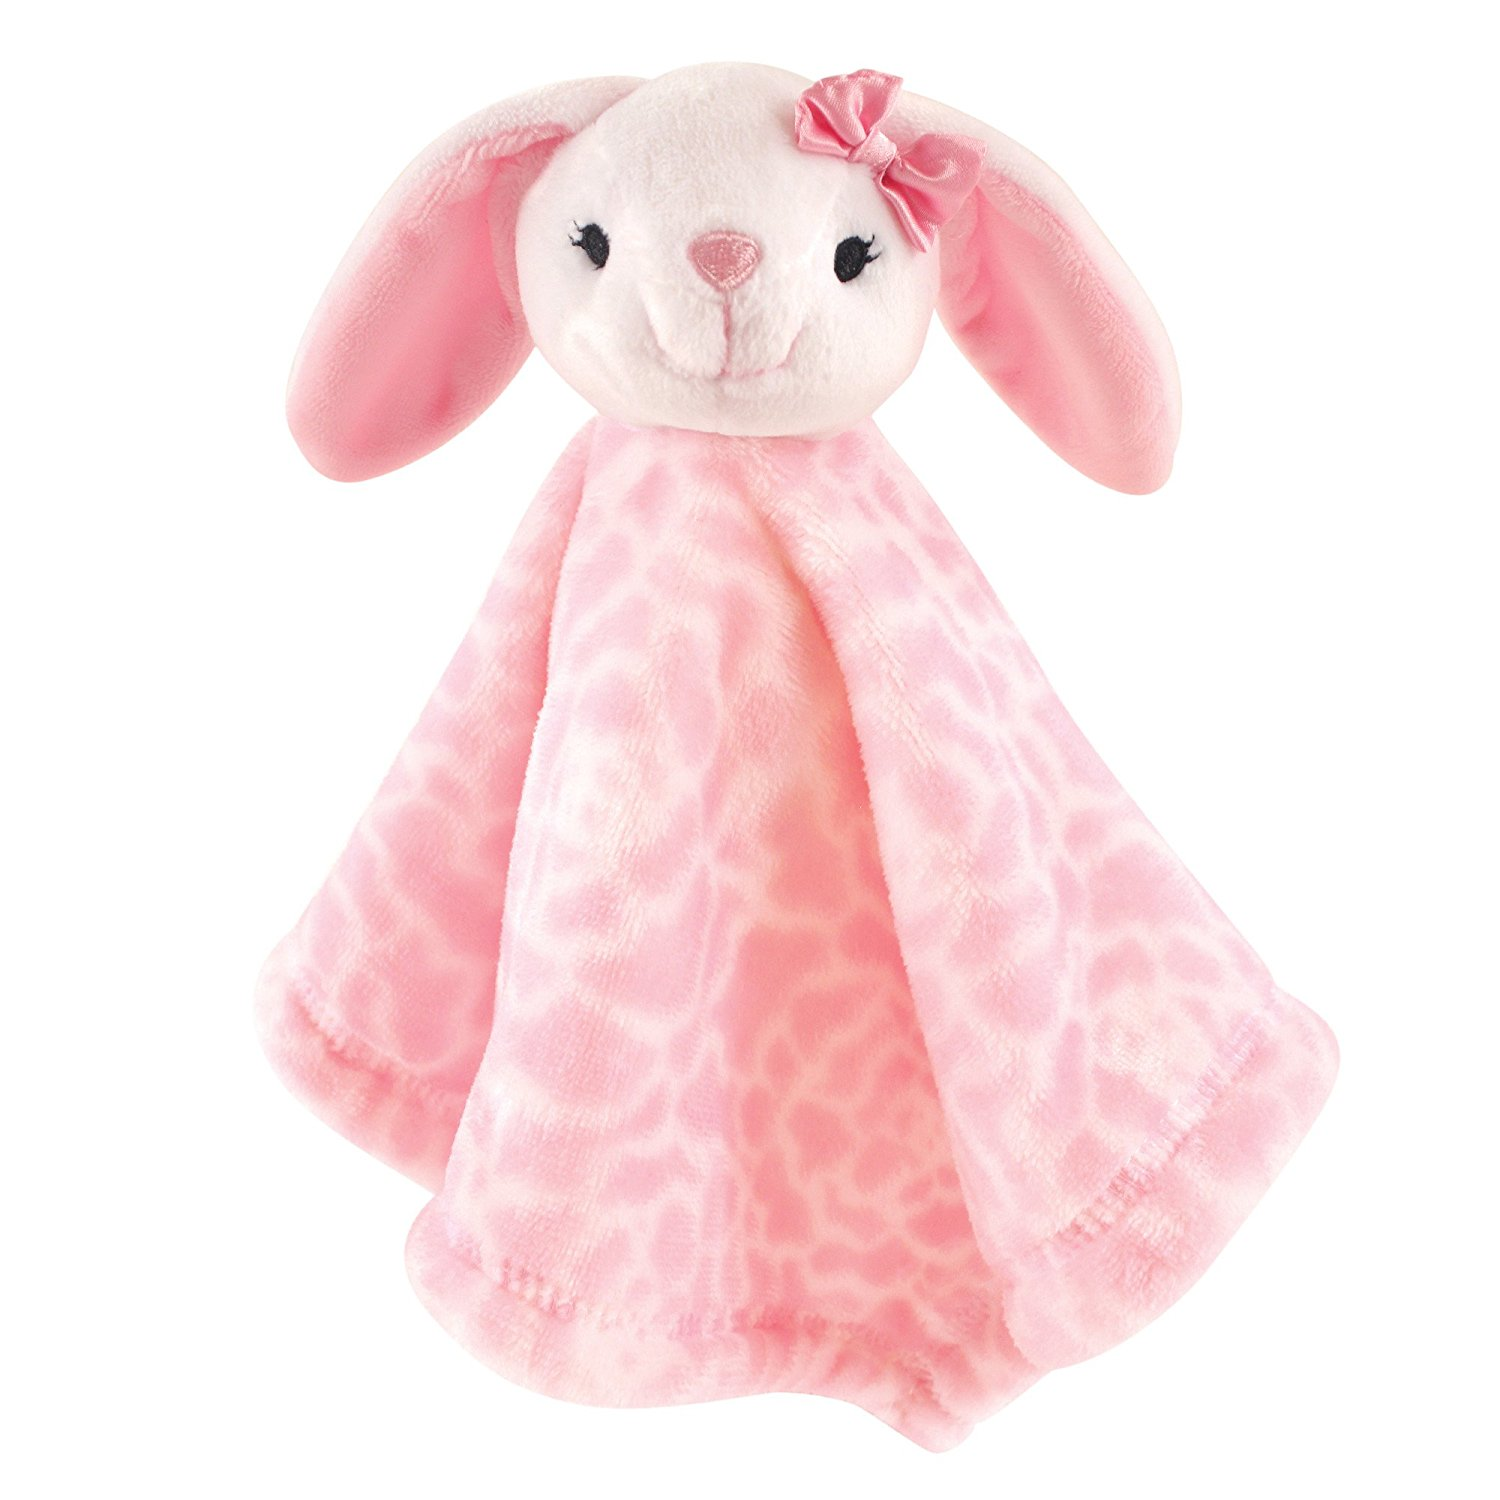 Animal Friend Plushy Security Blanket, Bunny